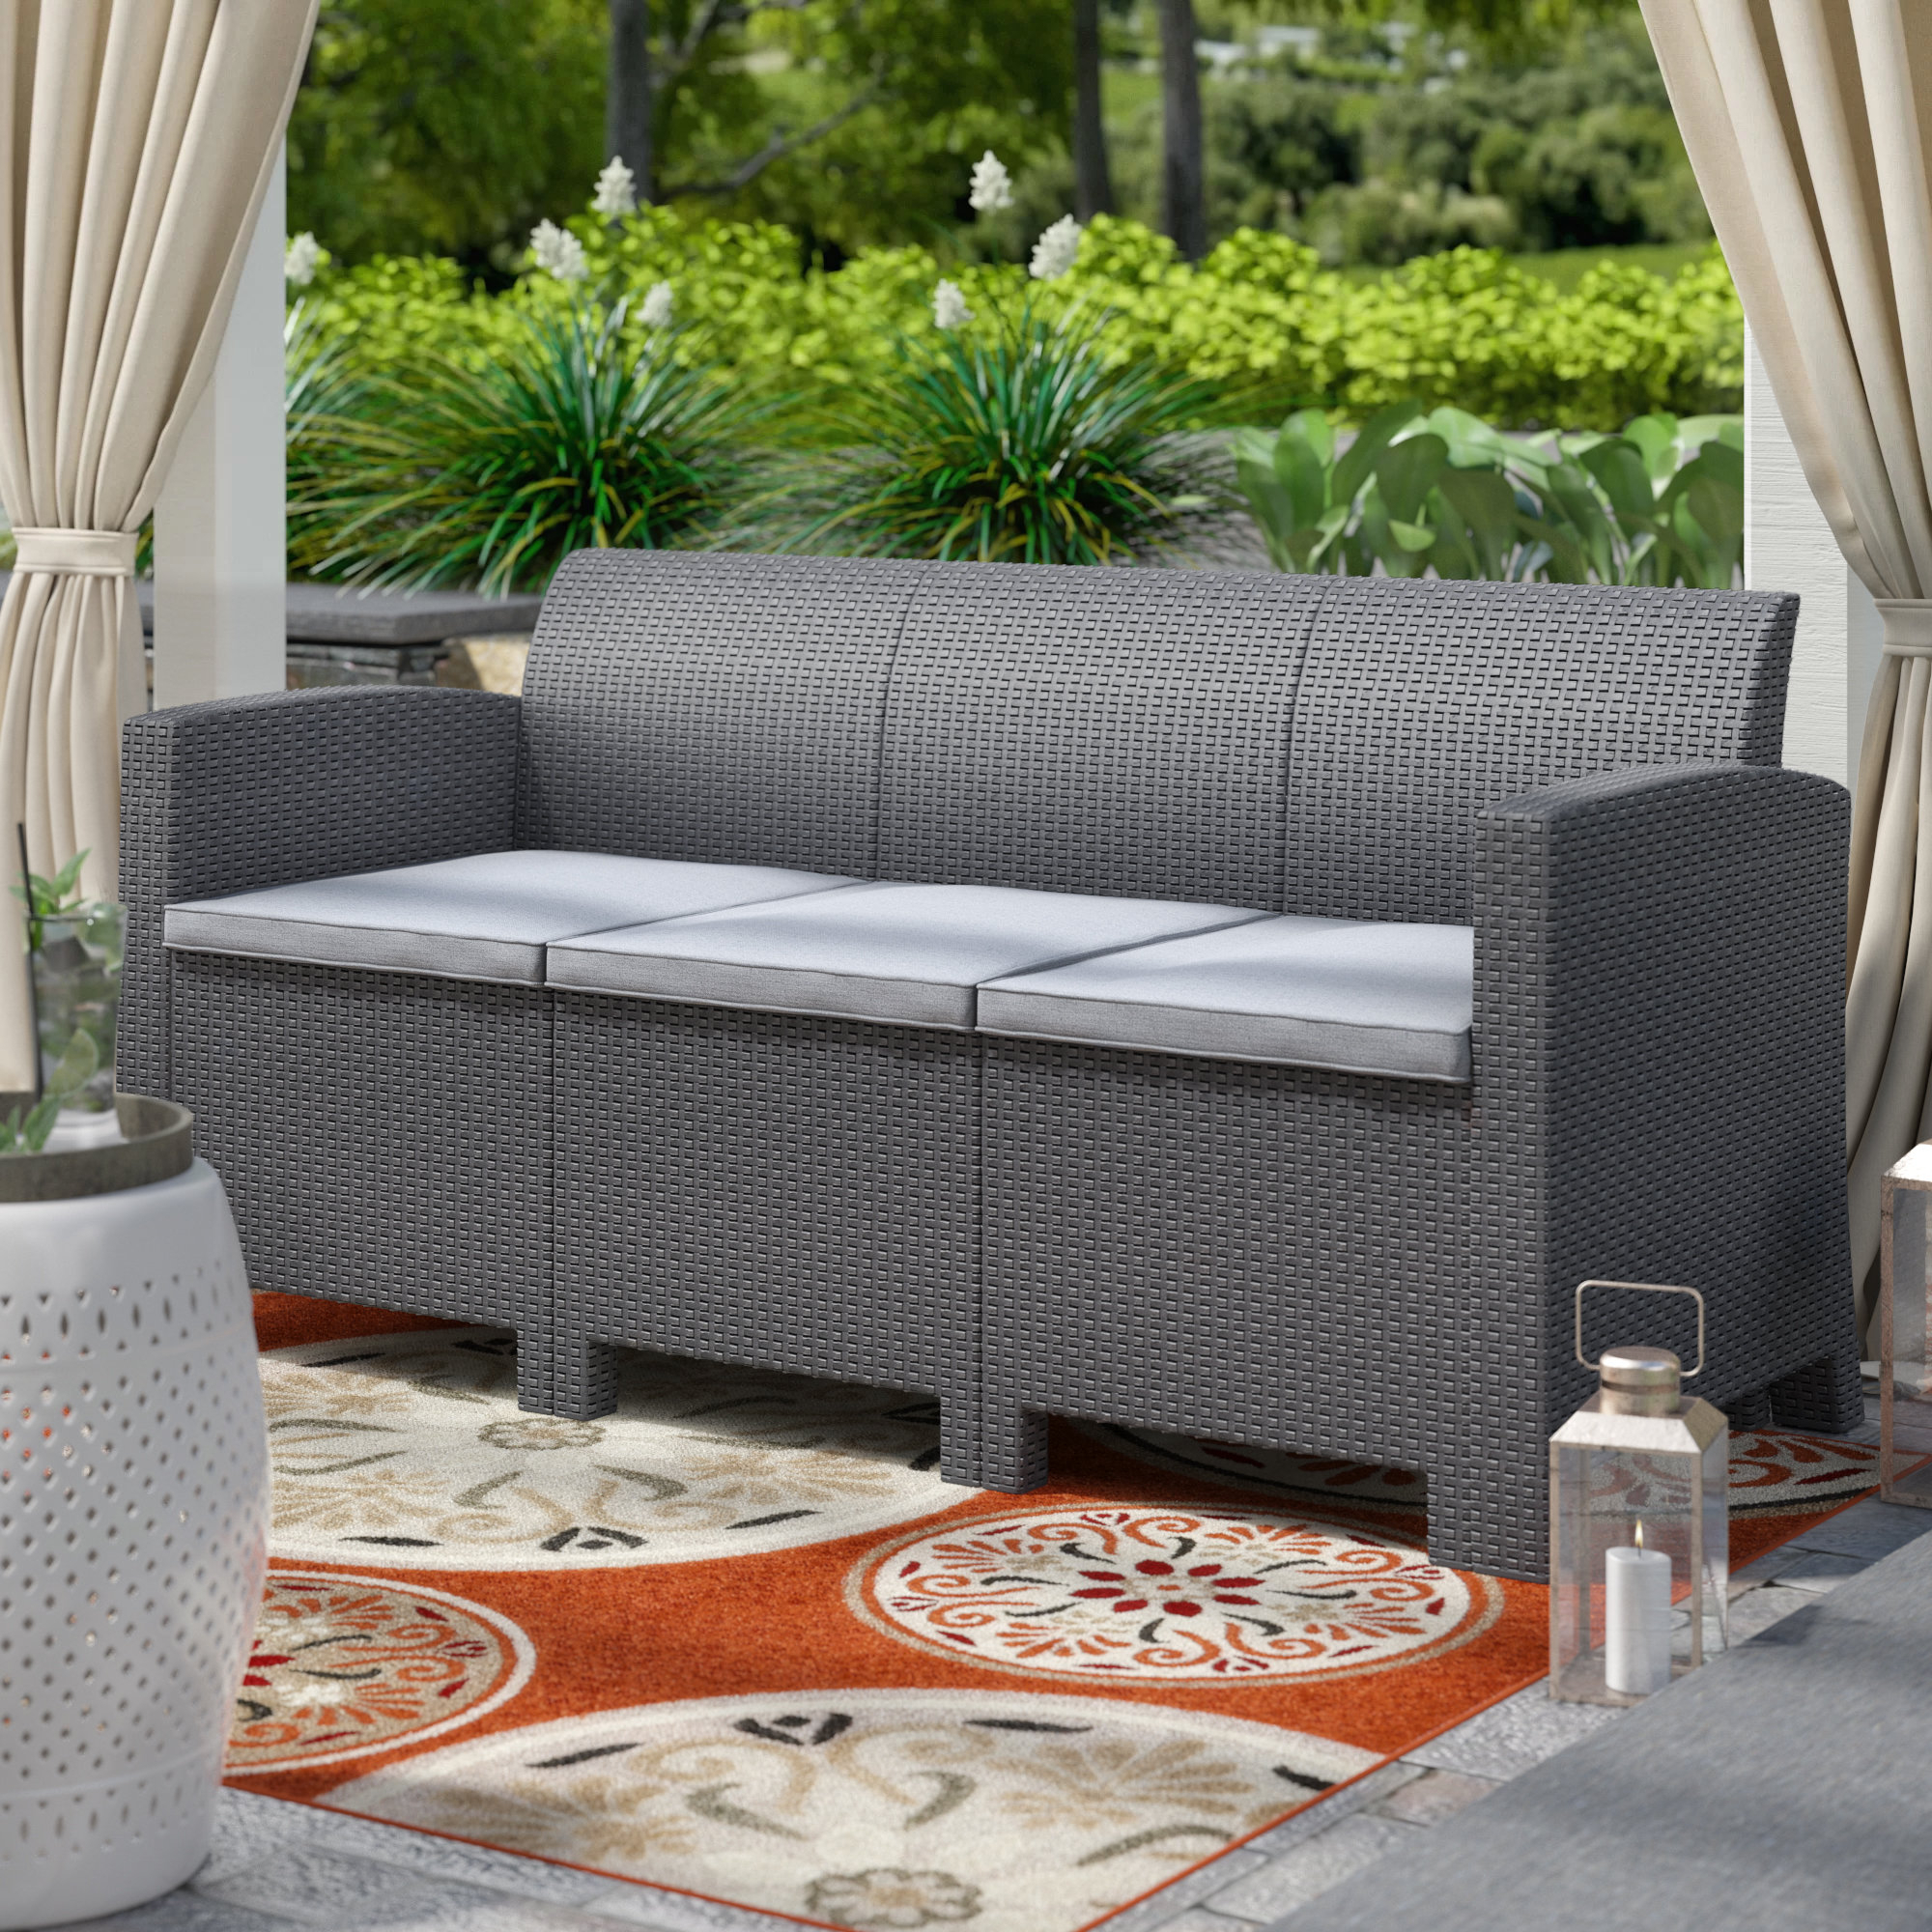 Well Known Yoselin Patio Sofas With Cushions Pertaining To Yoselin Patio Sofa With Cushions (View 16 of 20)